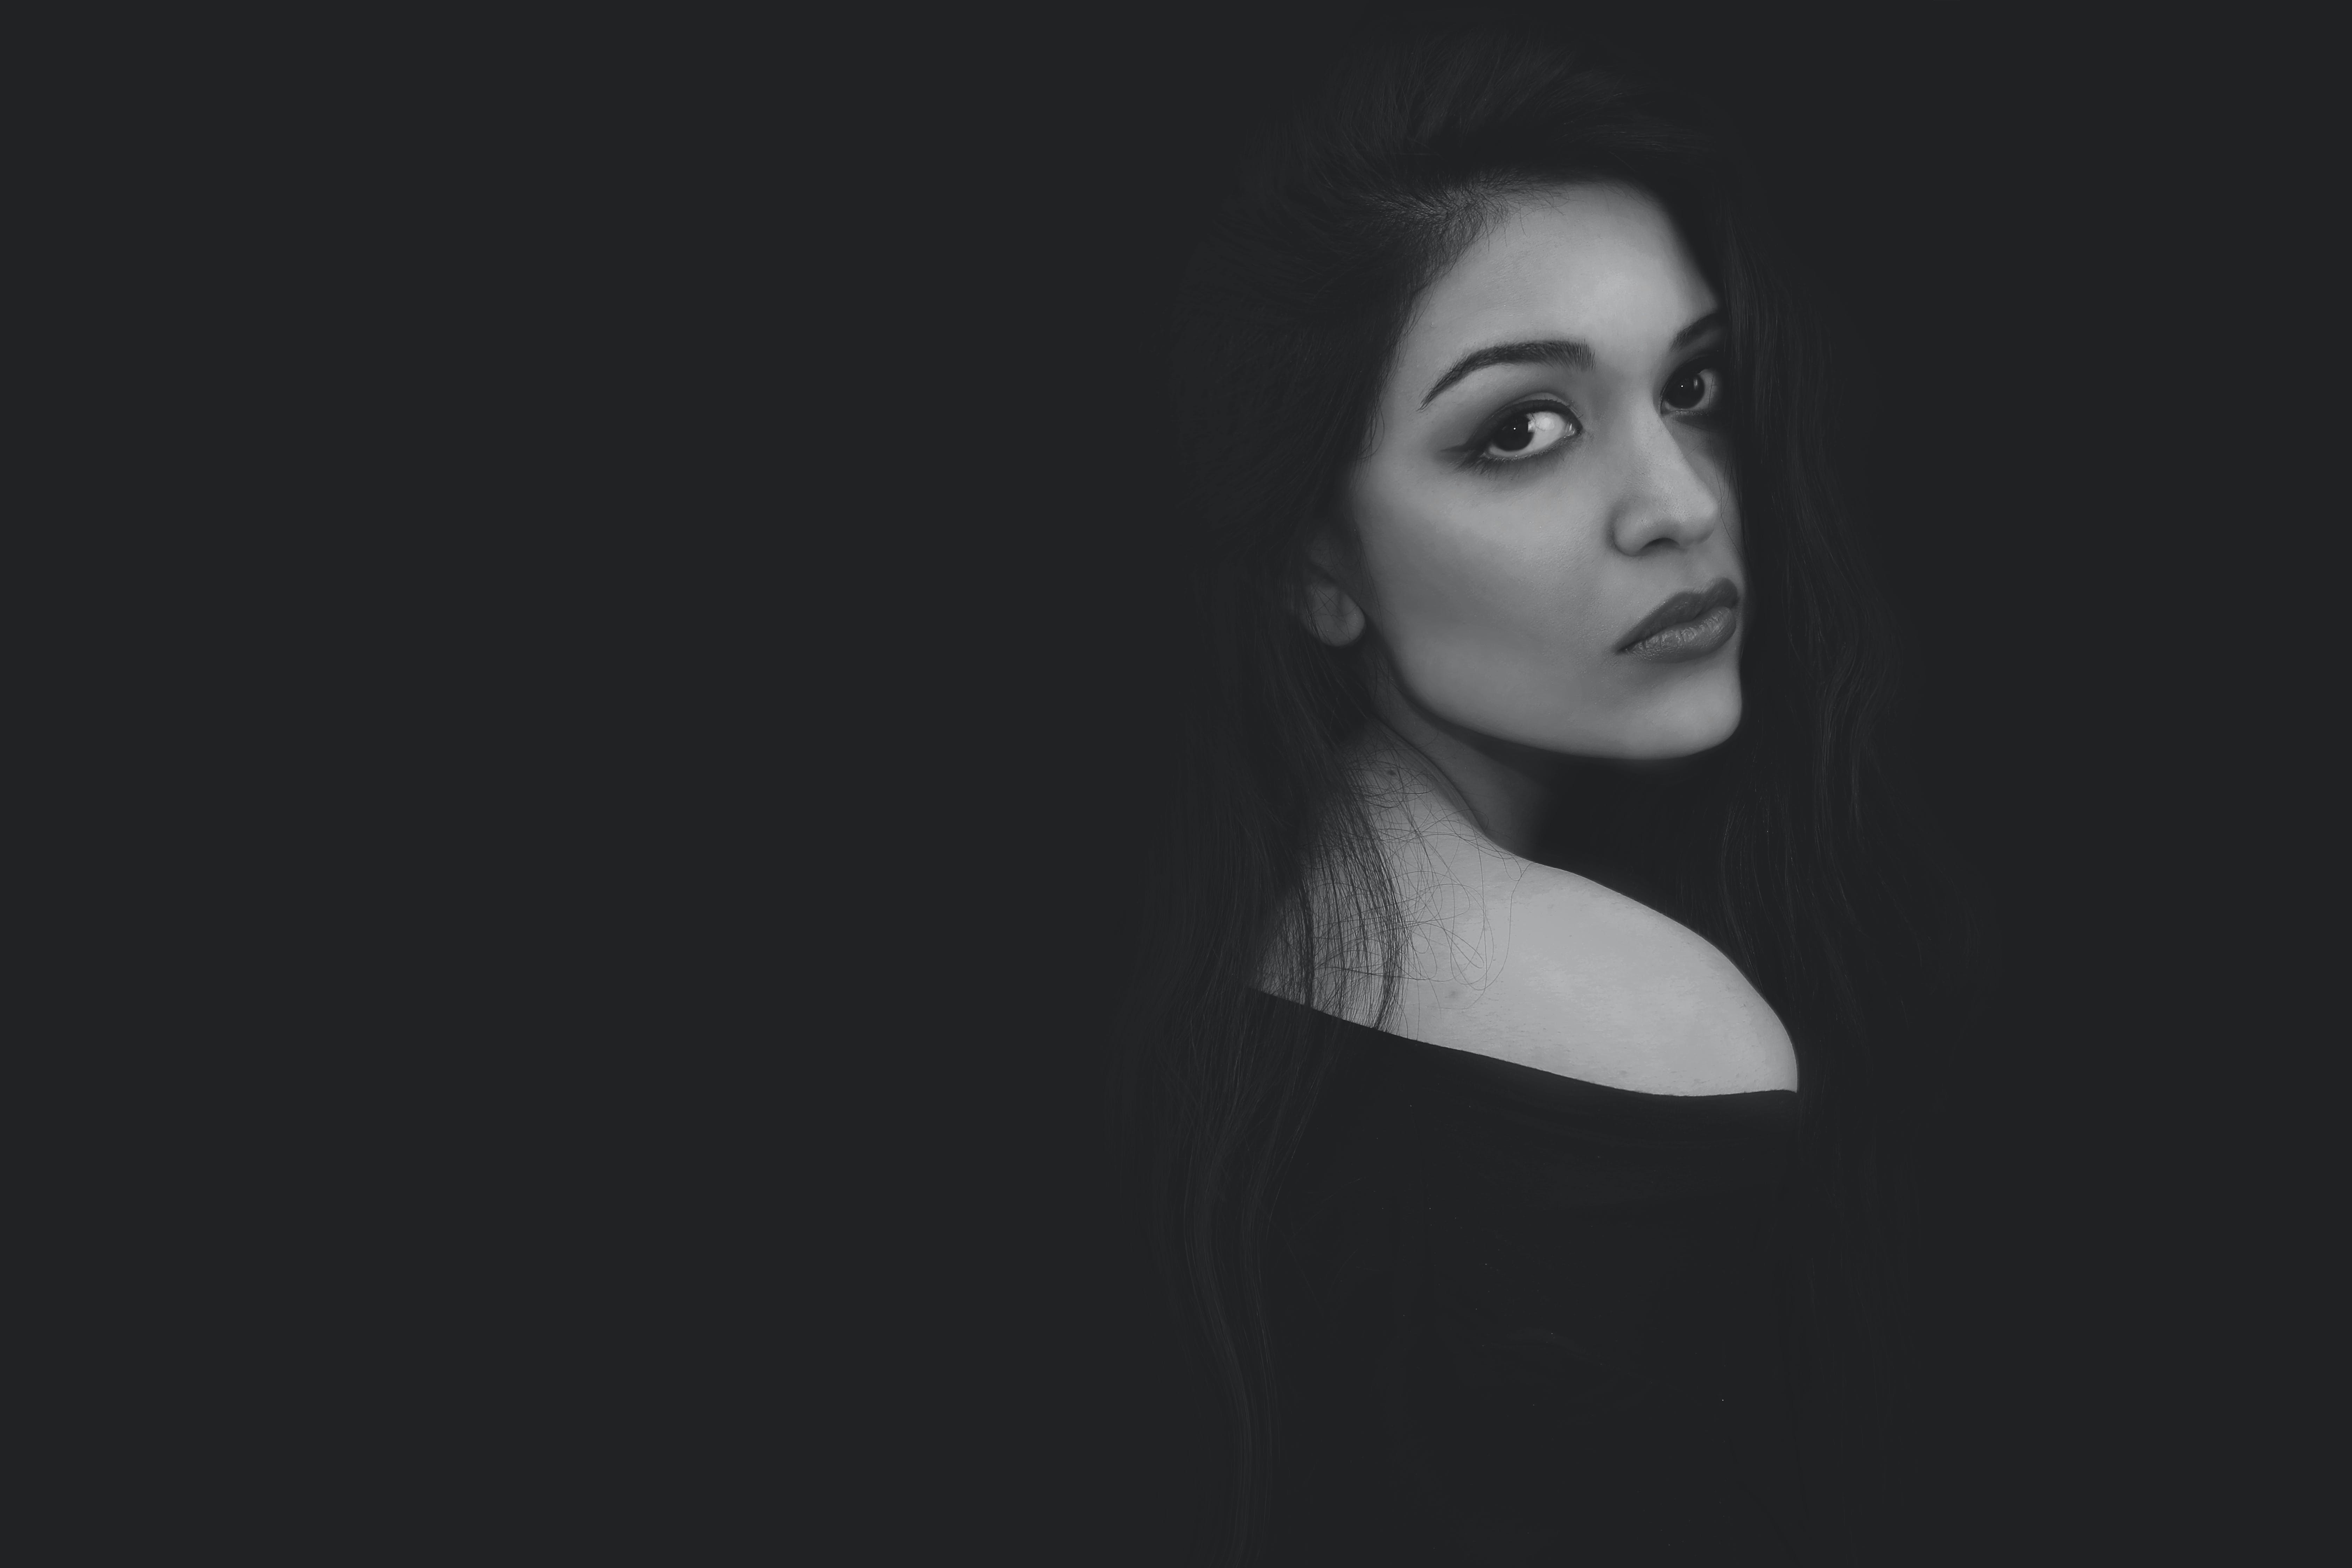 Grayscale Photo of Woman in Black Top